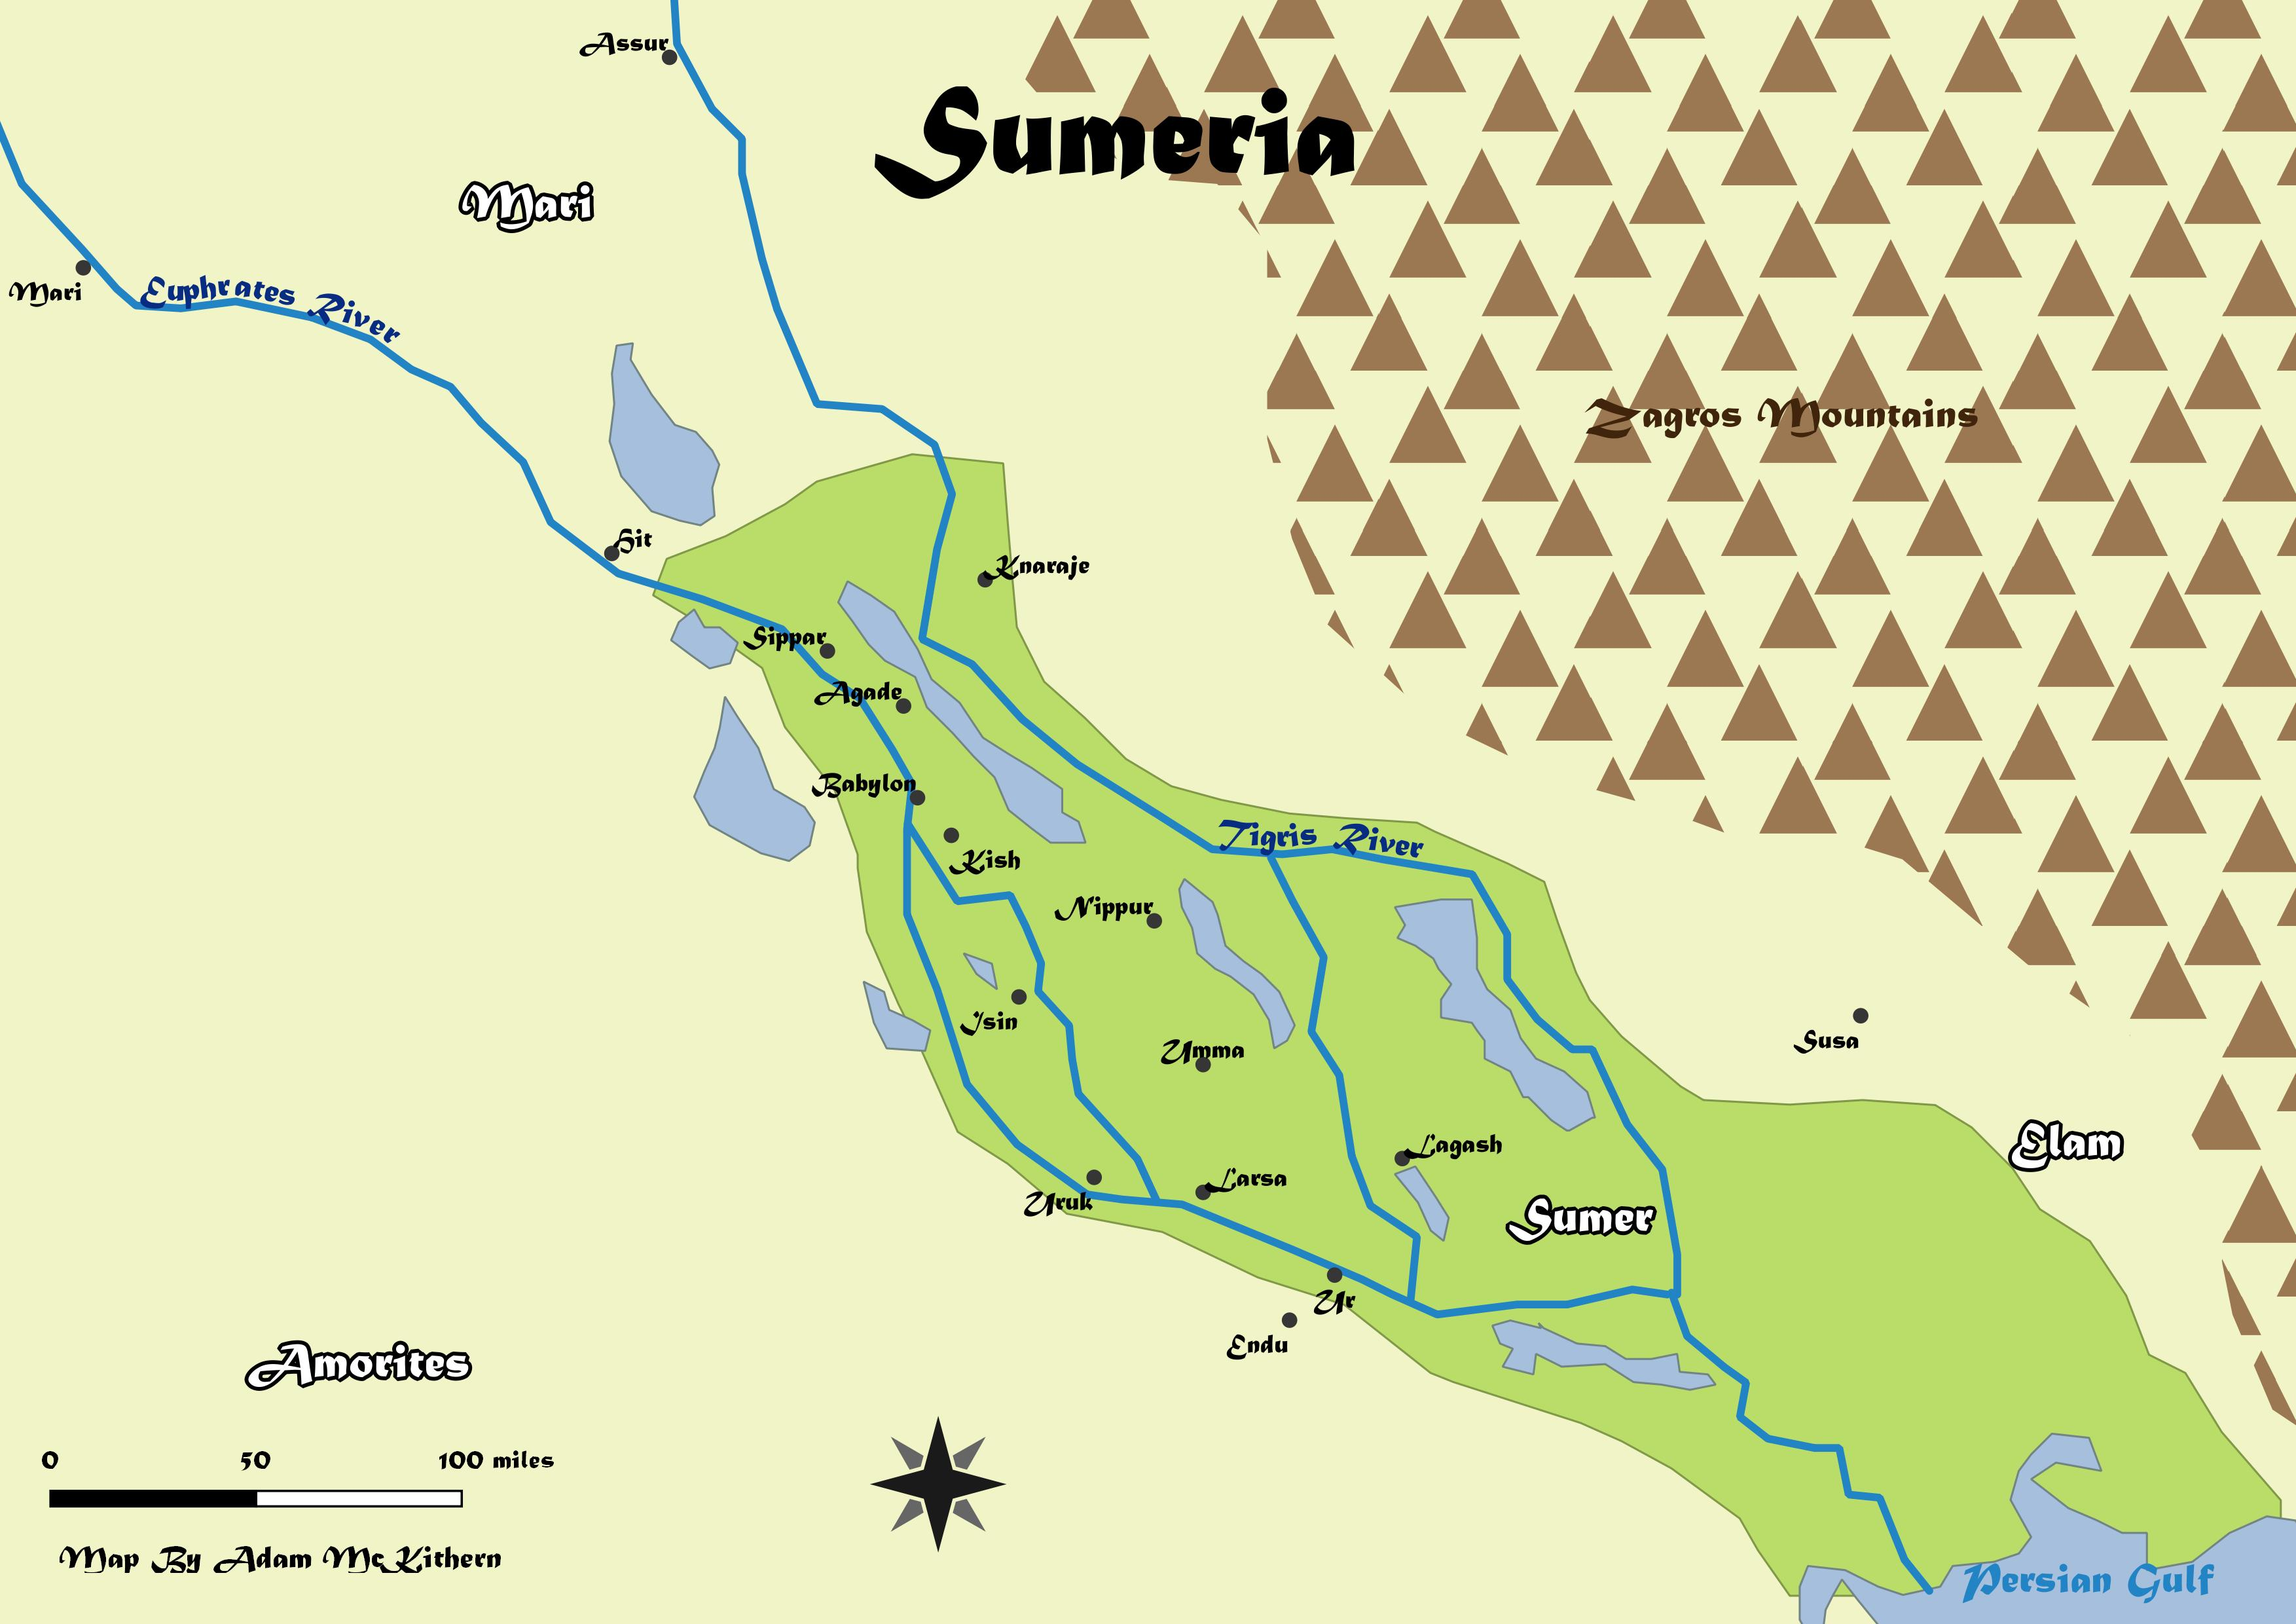 the sumerians Sumer, or the 'land of civilized kings', flourished in mesopotamia, now modern-day iraq, around 4500 bc.